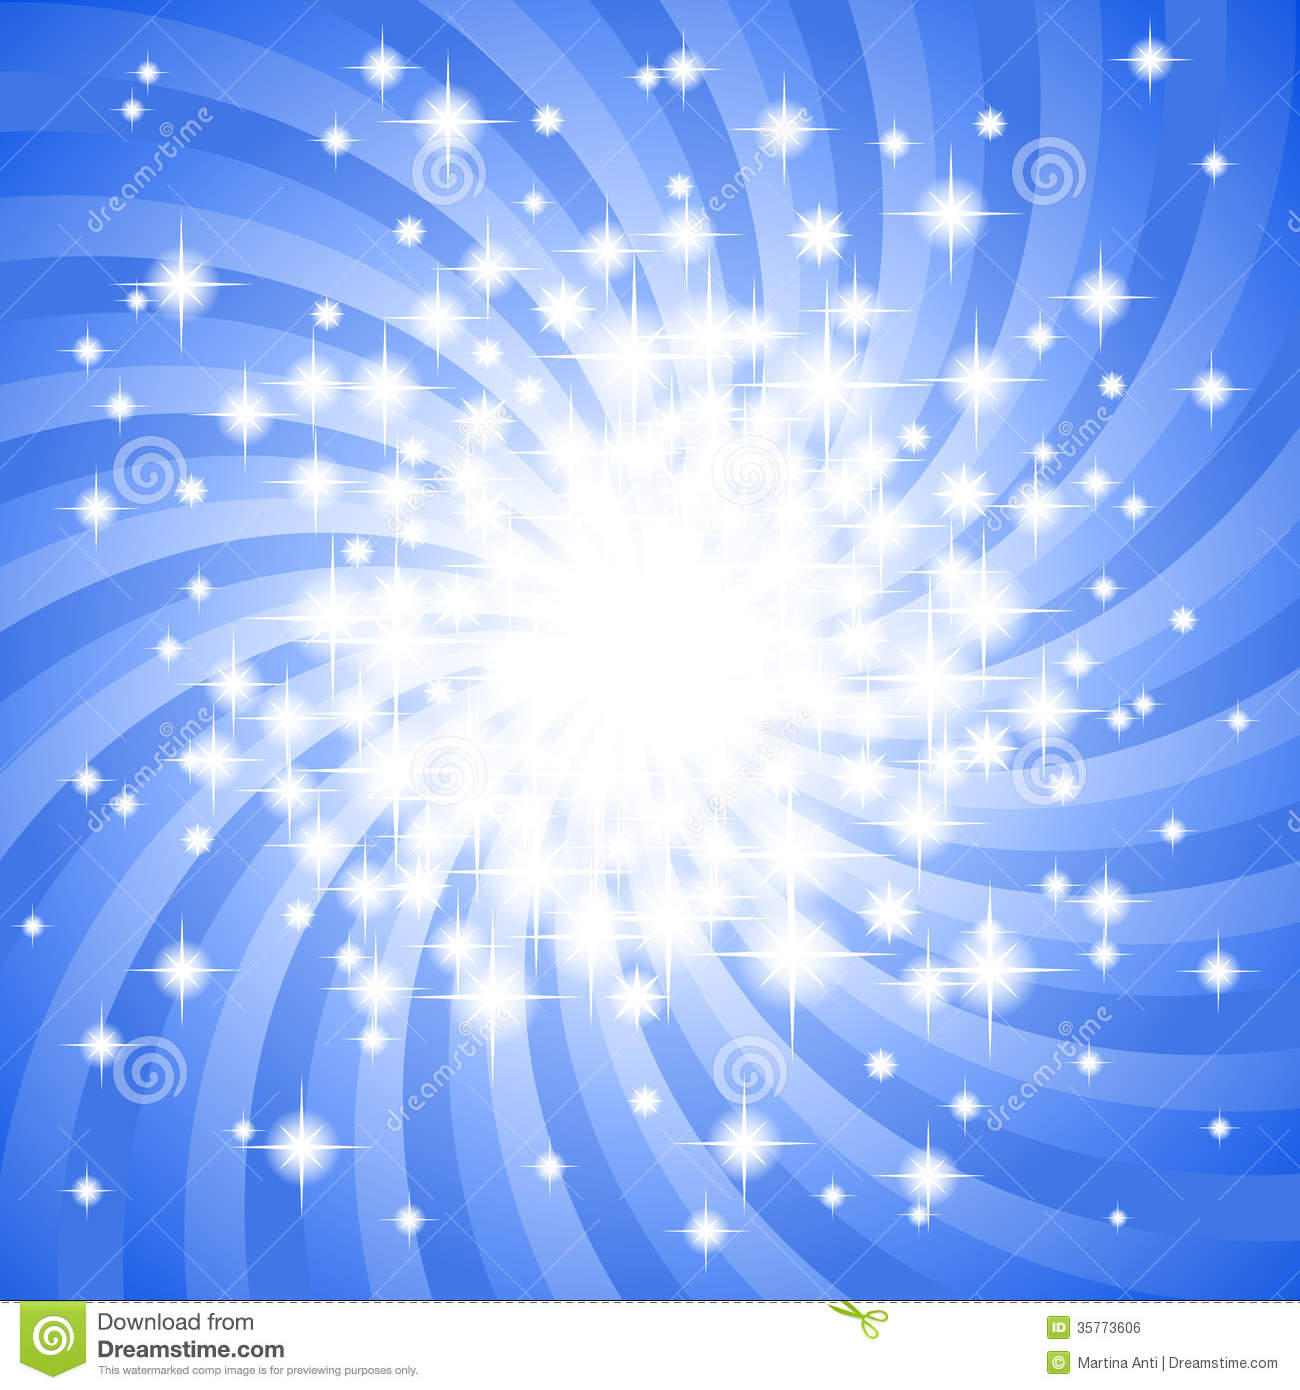 blue star background vector - photo #18